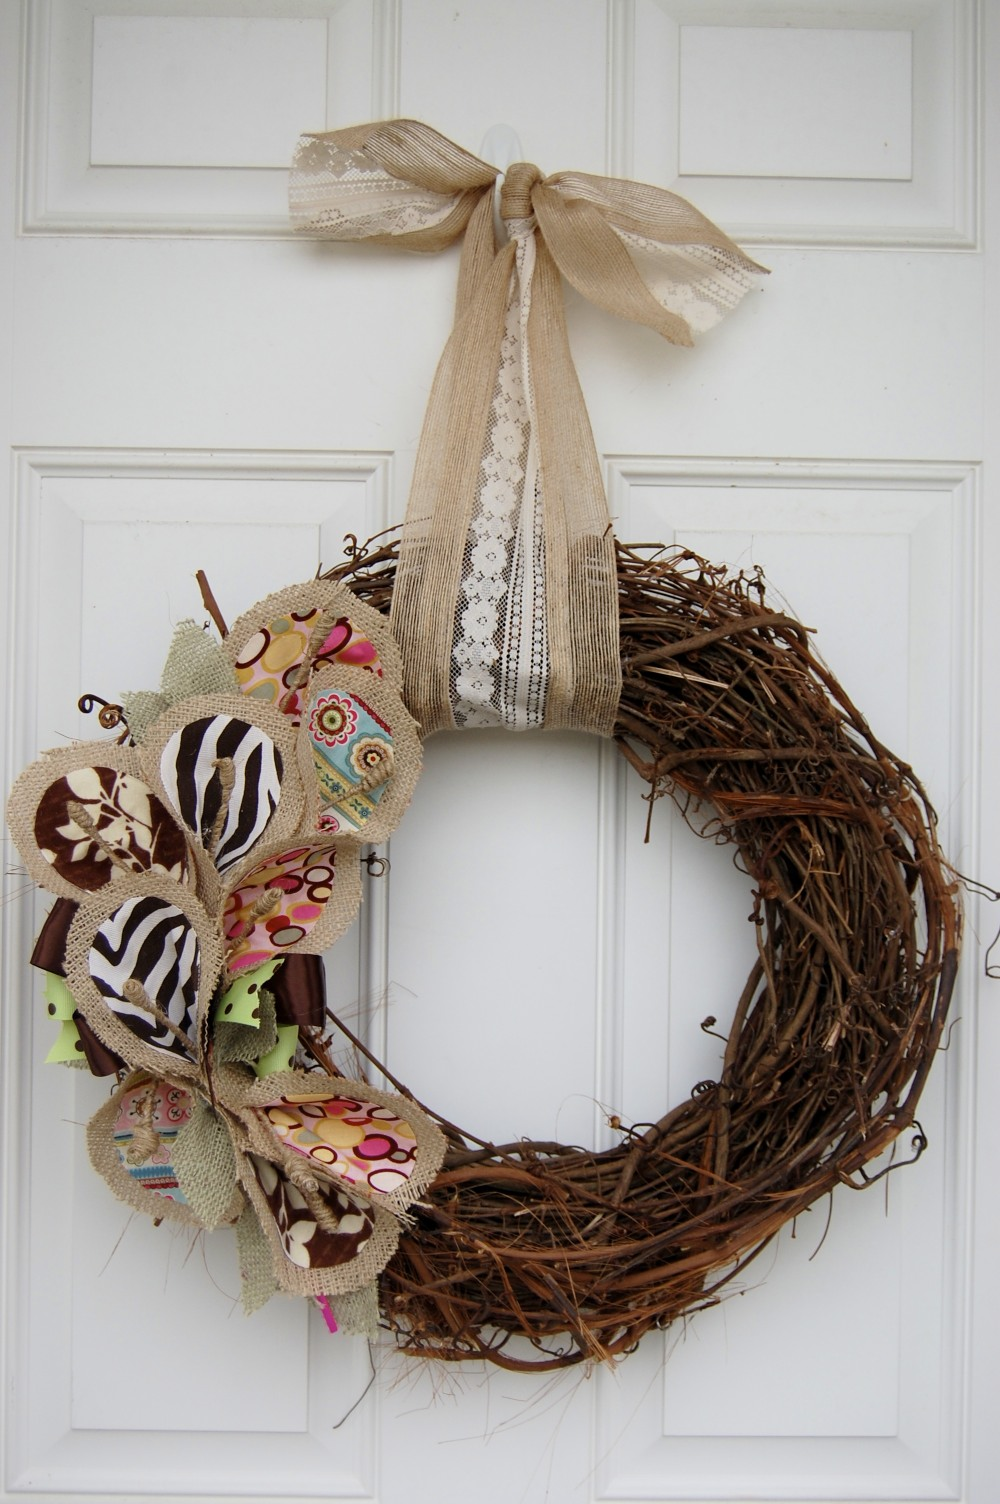 That's So Cuegly: Year Round Wreath